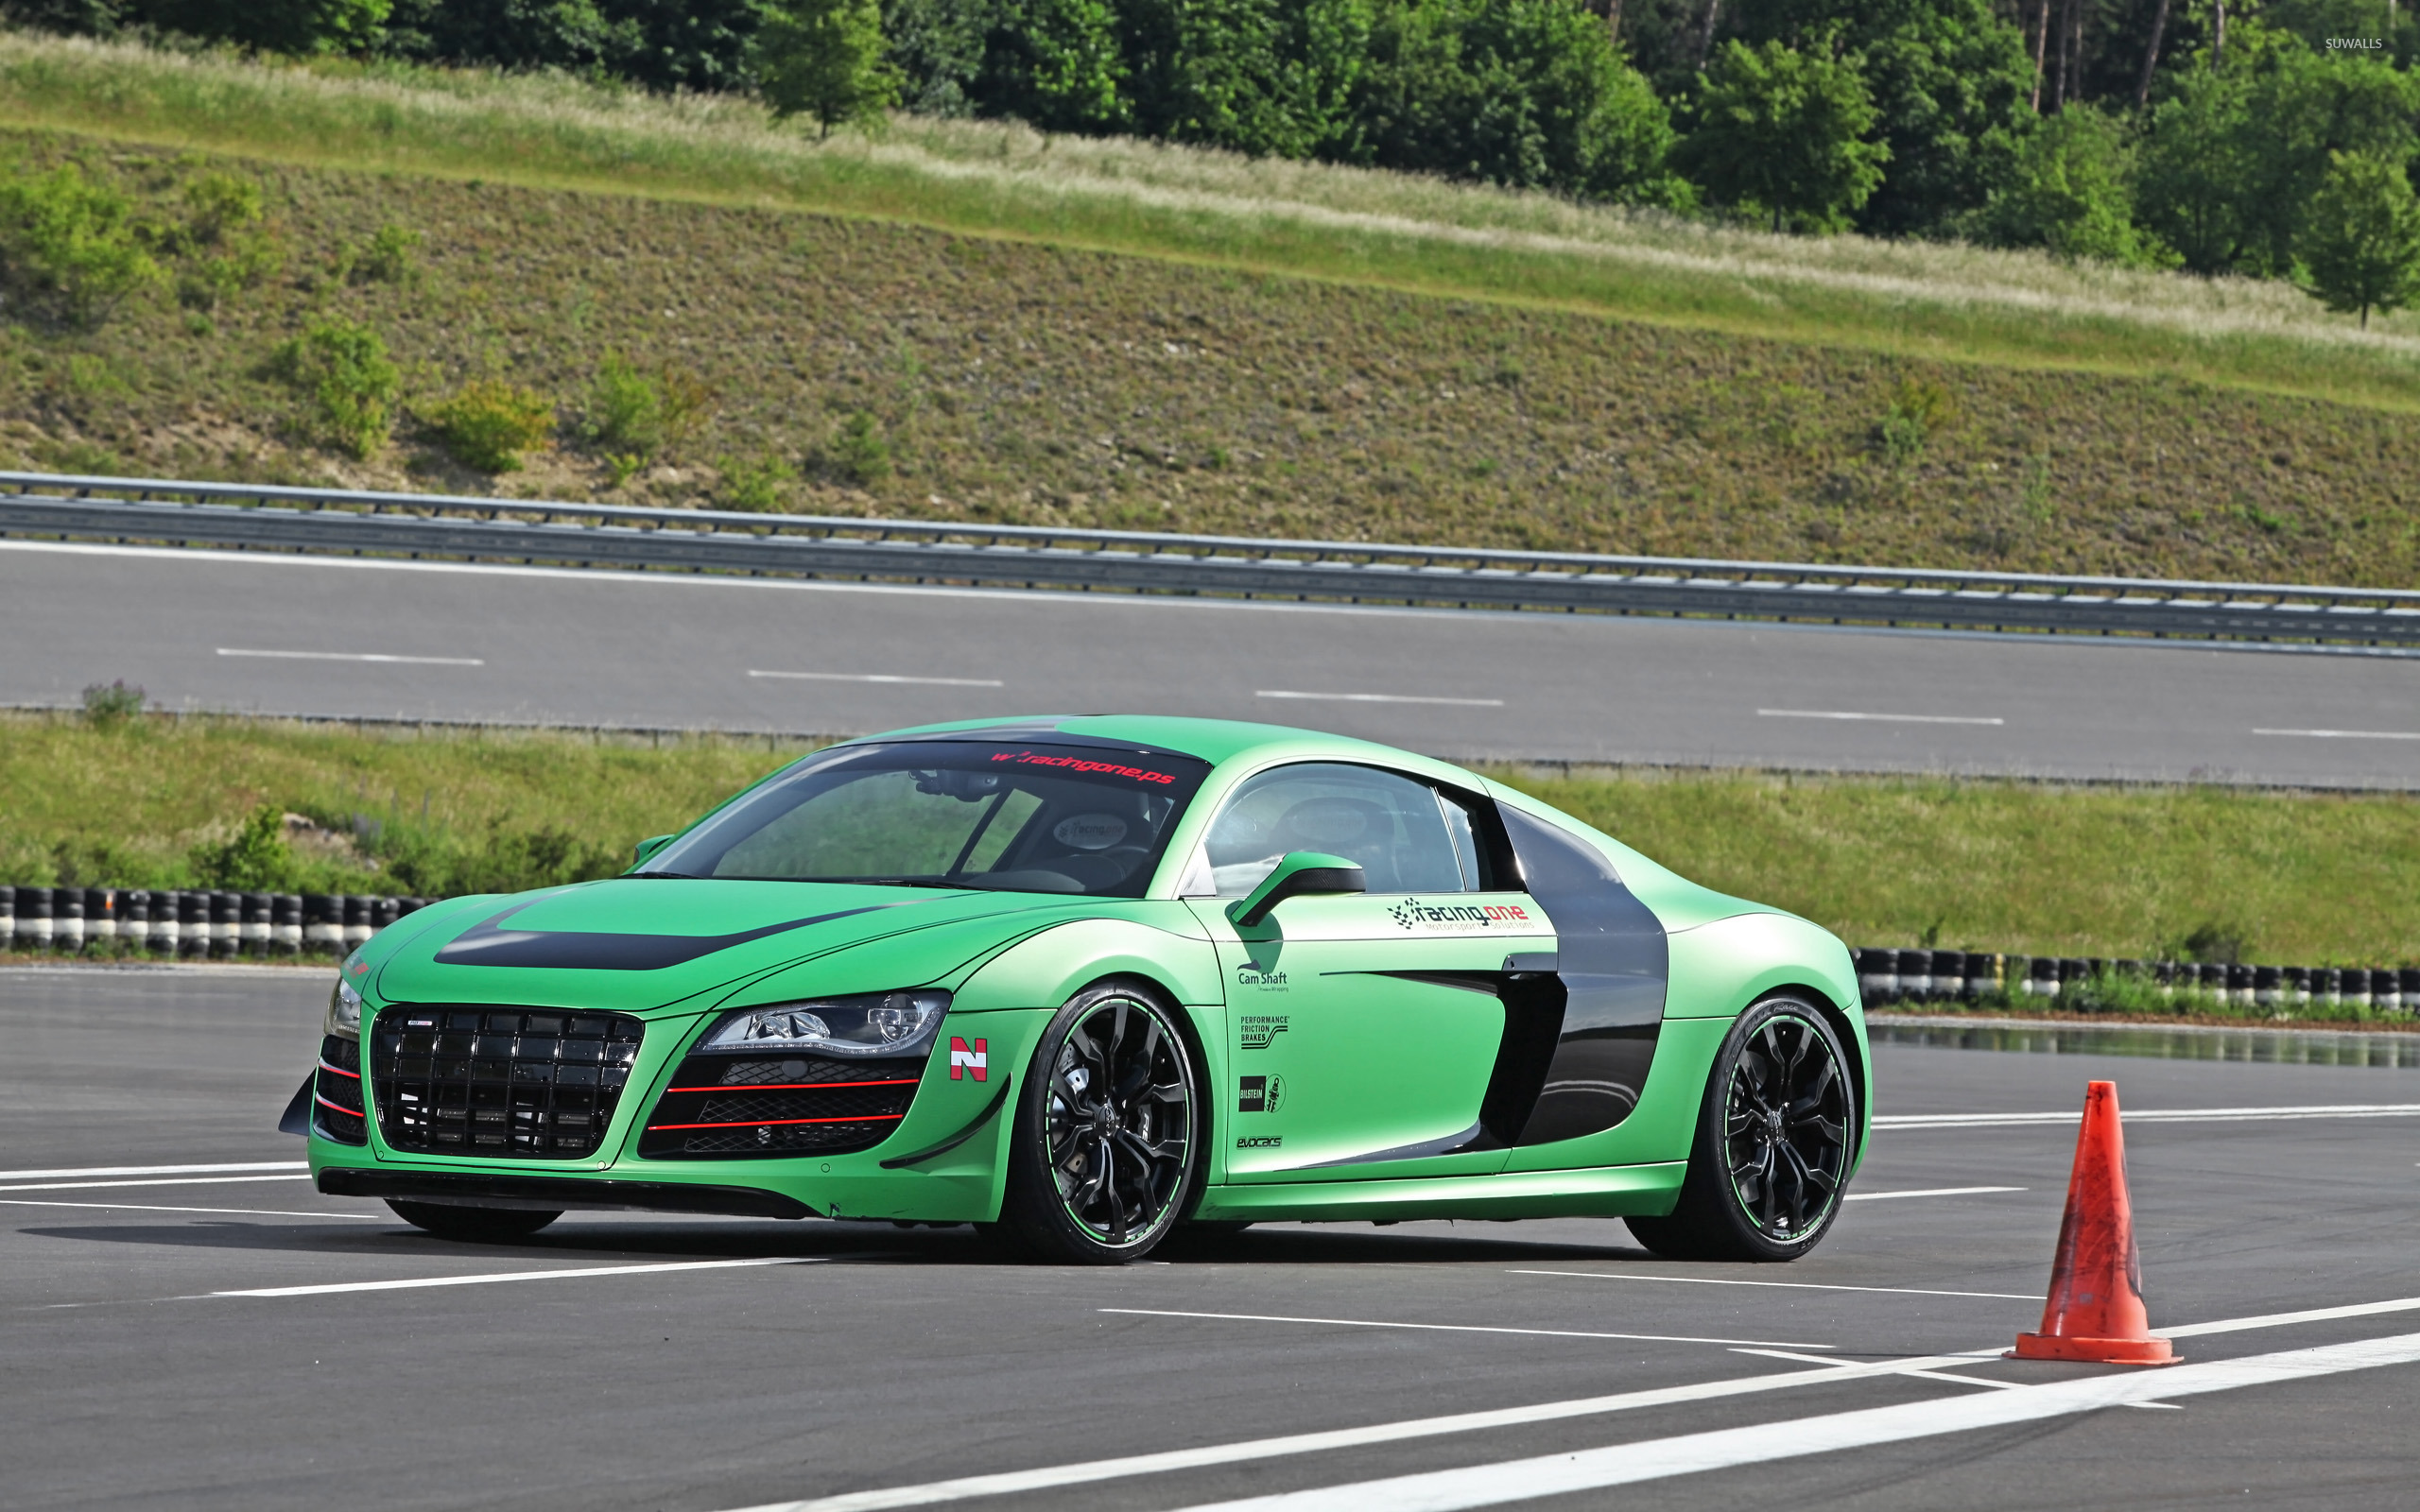 2012 Racing One Audi R8 On A Racing Track Side View Wallpaper Car